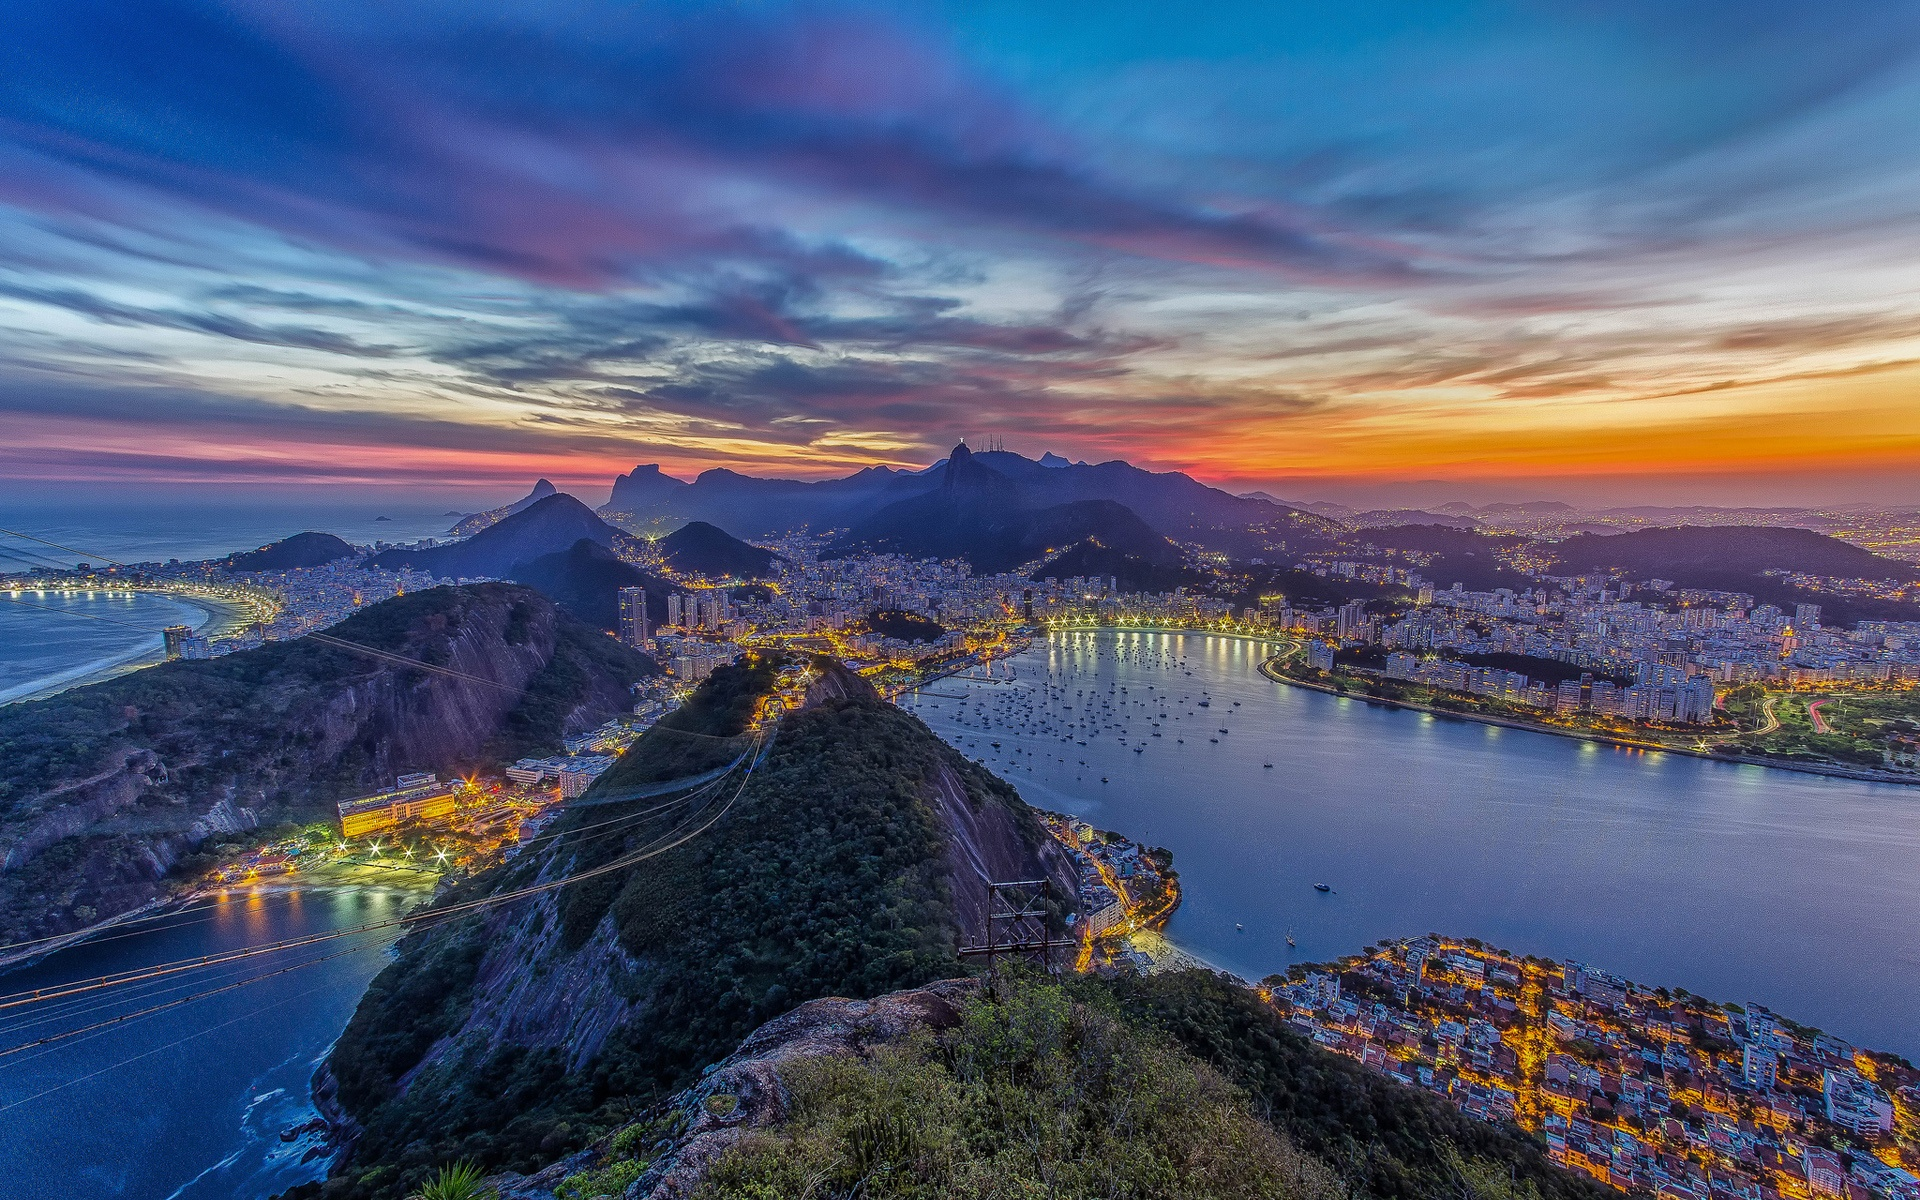 Wallpaper Rio De Janeiro Beautiful City Night Lights Ocean